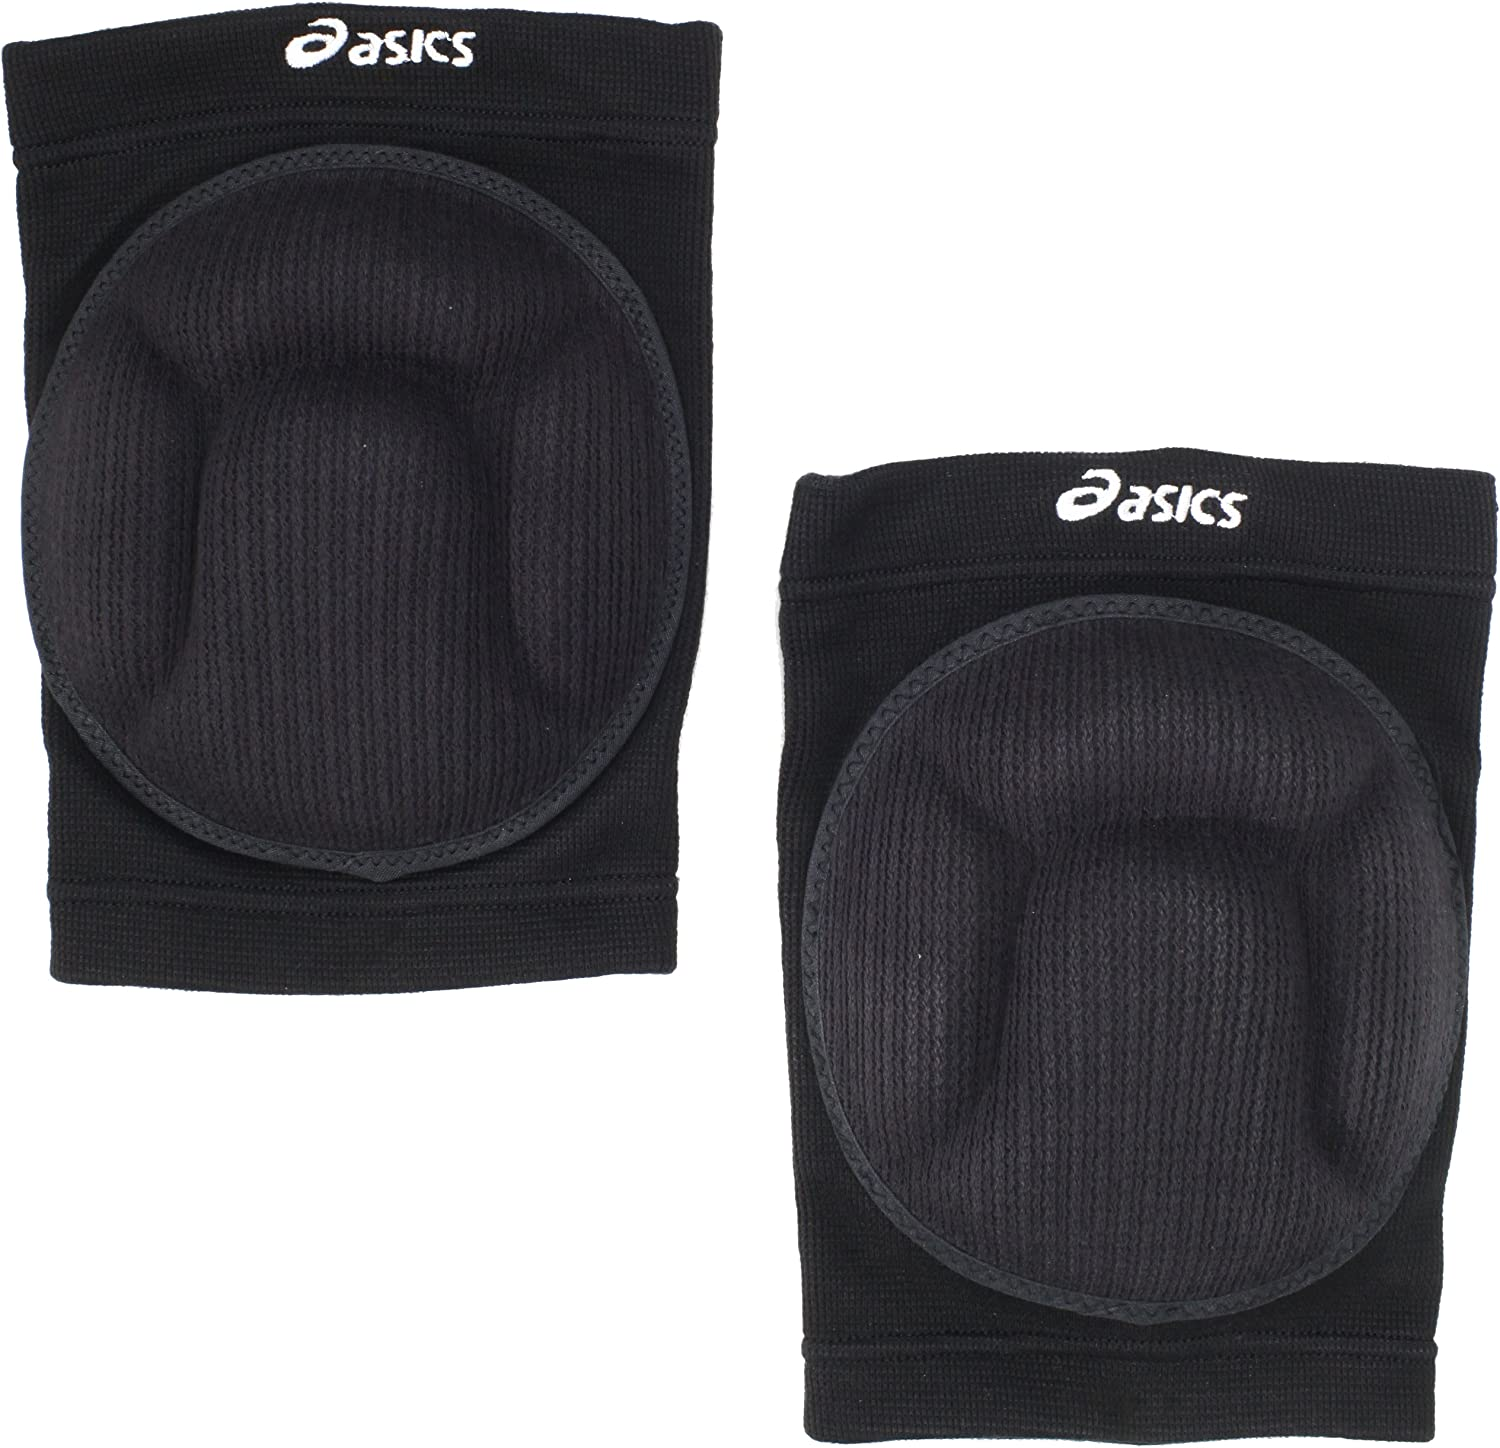 ASICS 09, Black, One Size : Volleyball Knee Pads : Clothing